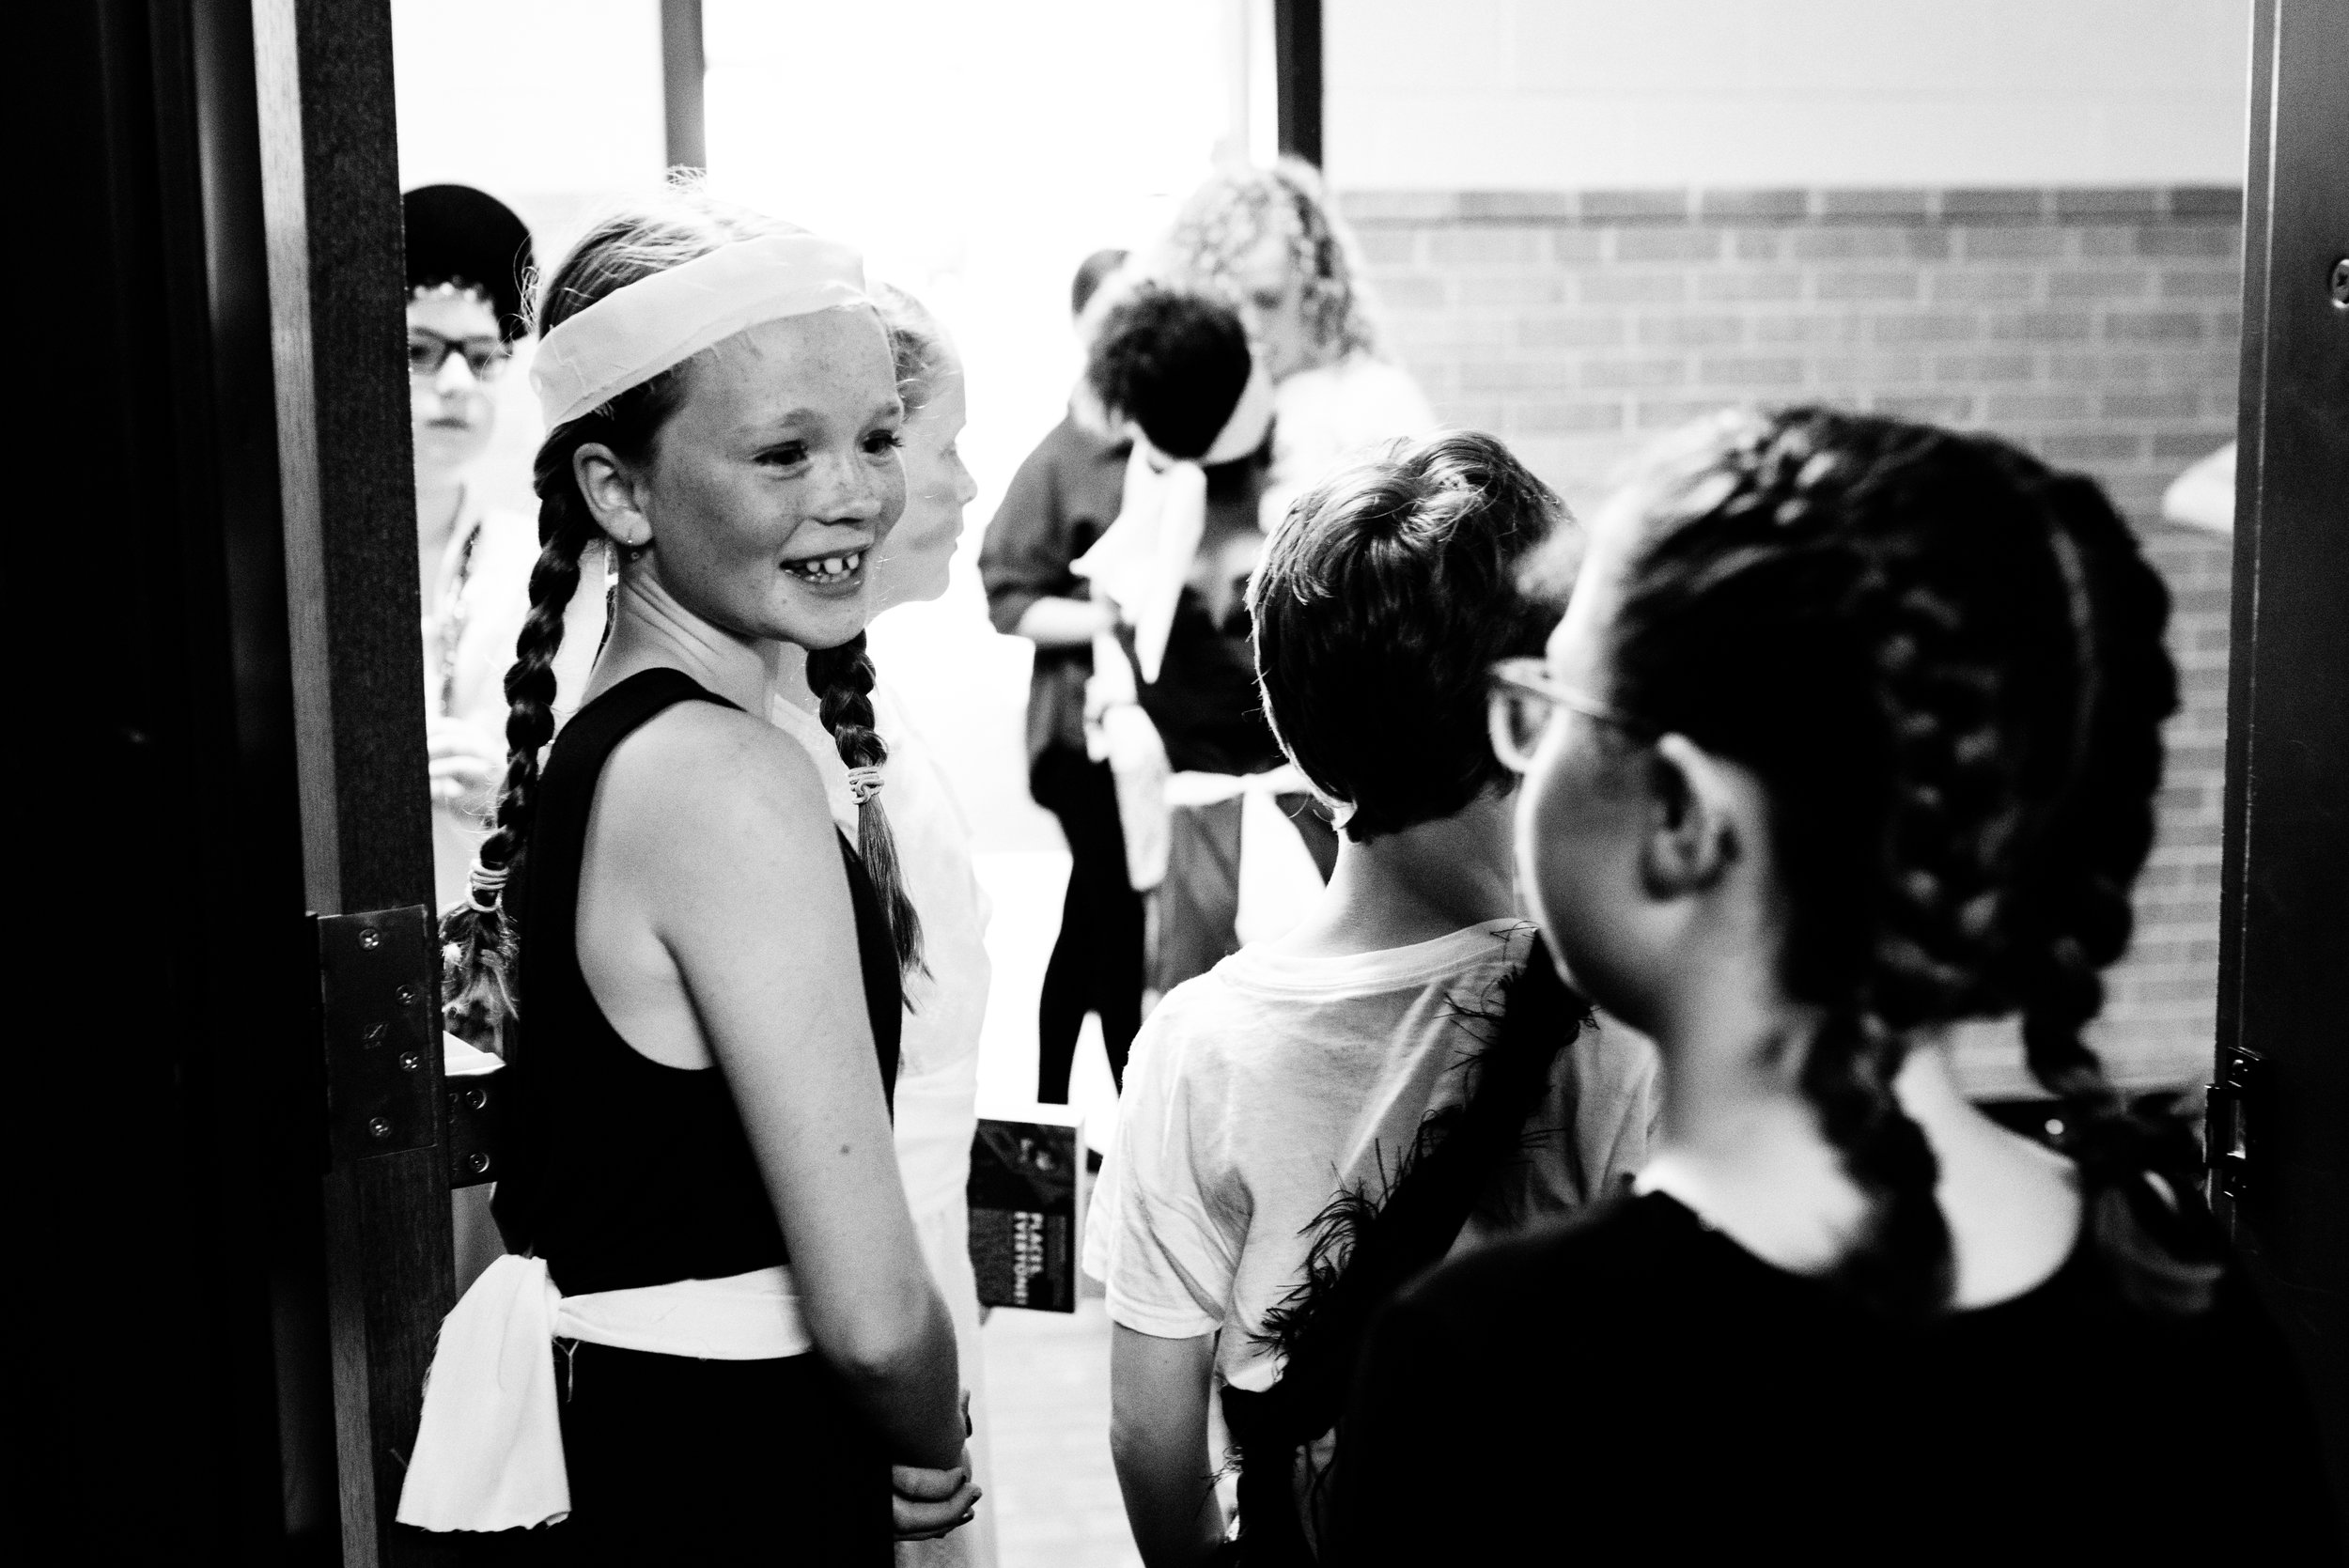 Jersey Elseth flashes a smile to her Brave Girl cast members before they hit the stage.